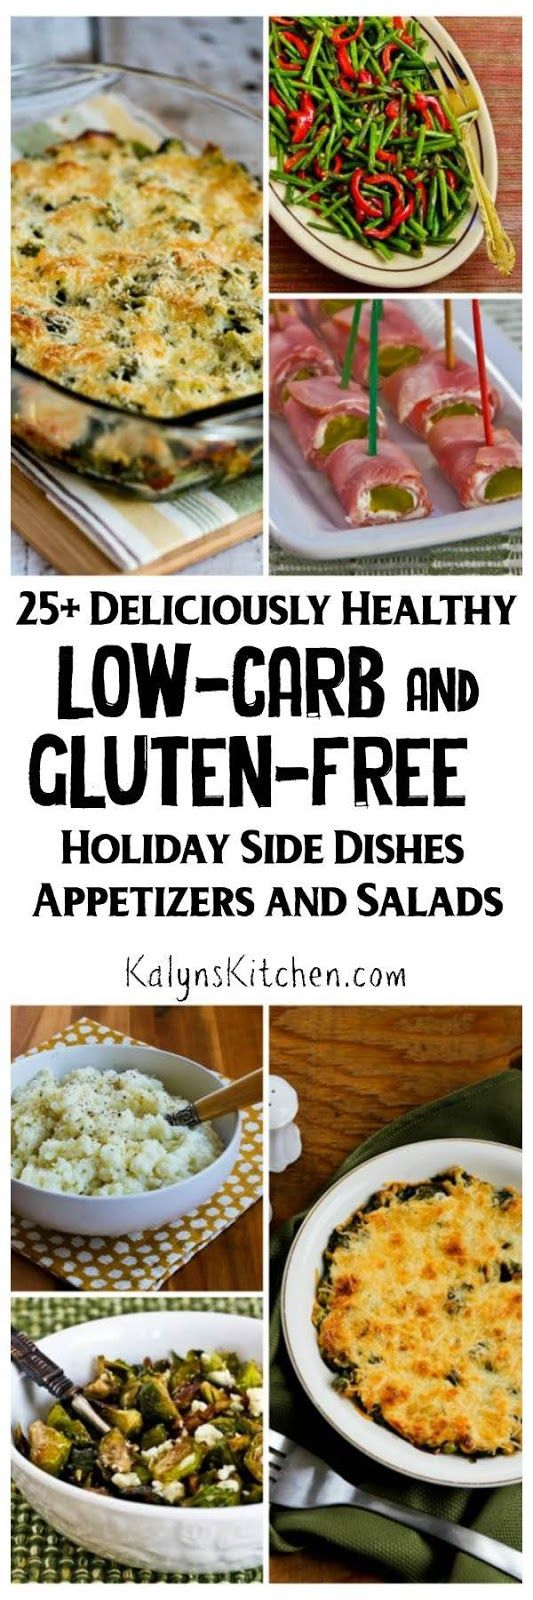 25+ Deliciously Healthy Low-Carb and Gluten-Free Holiday Side Dishes, Appetizers, and Salads [KalynsKitchen.com]